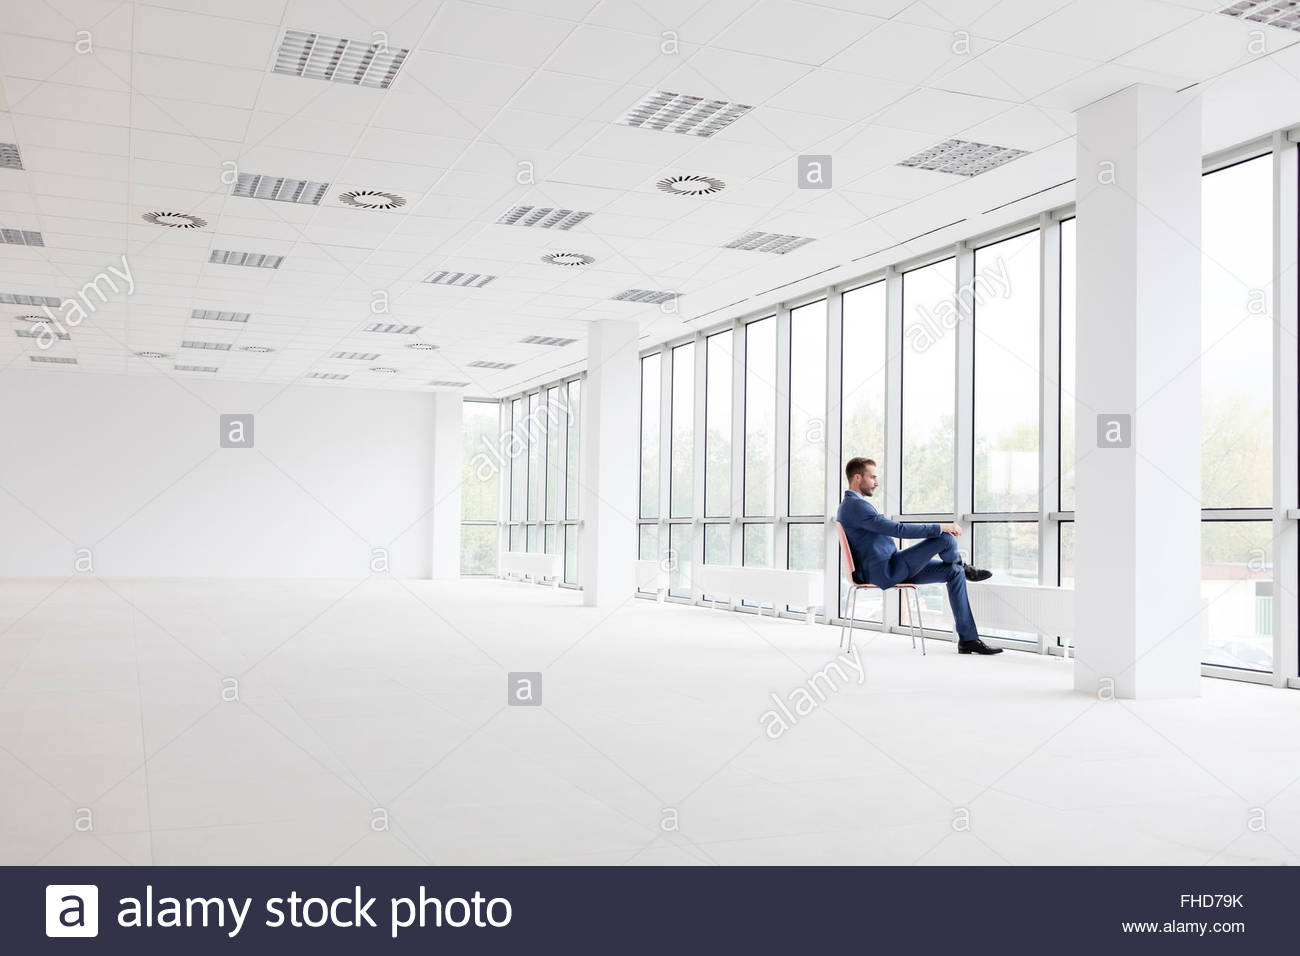 Empty Office Room With Window Cloudiasouvenir Com - Businessman in empty office looking out of window stock image